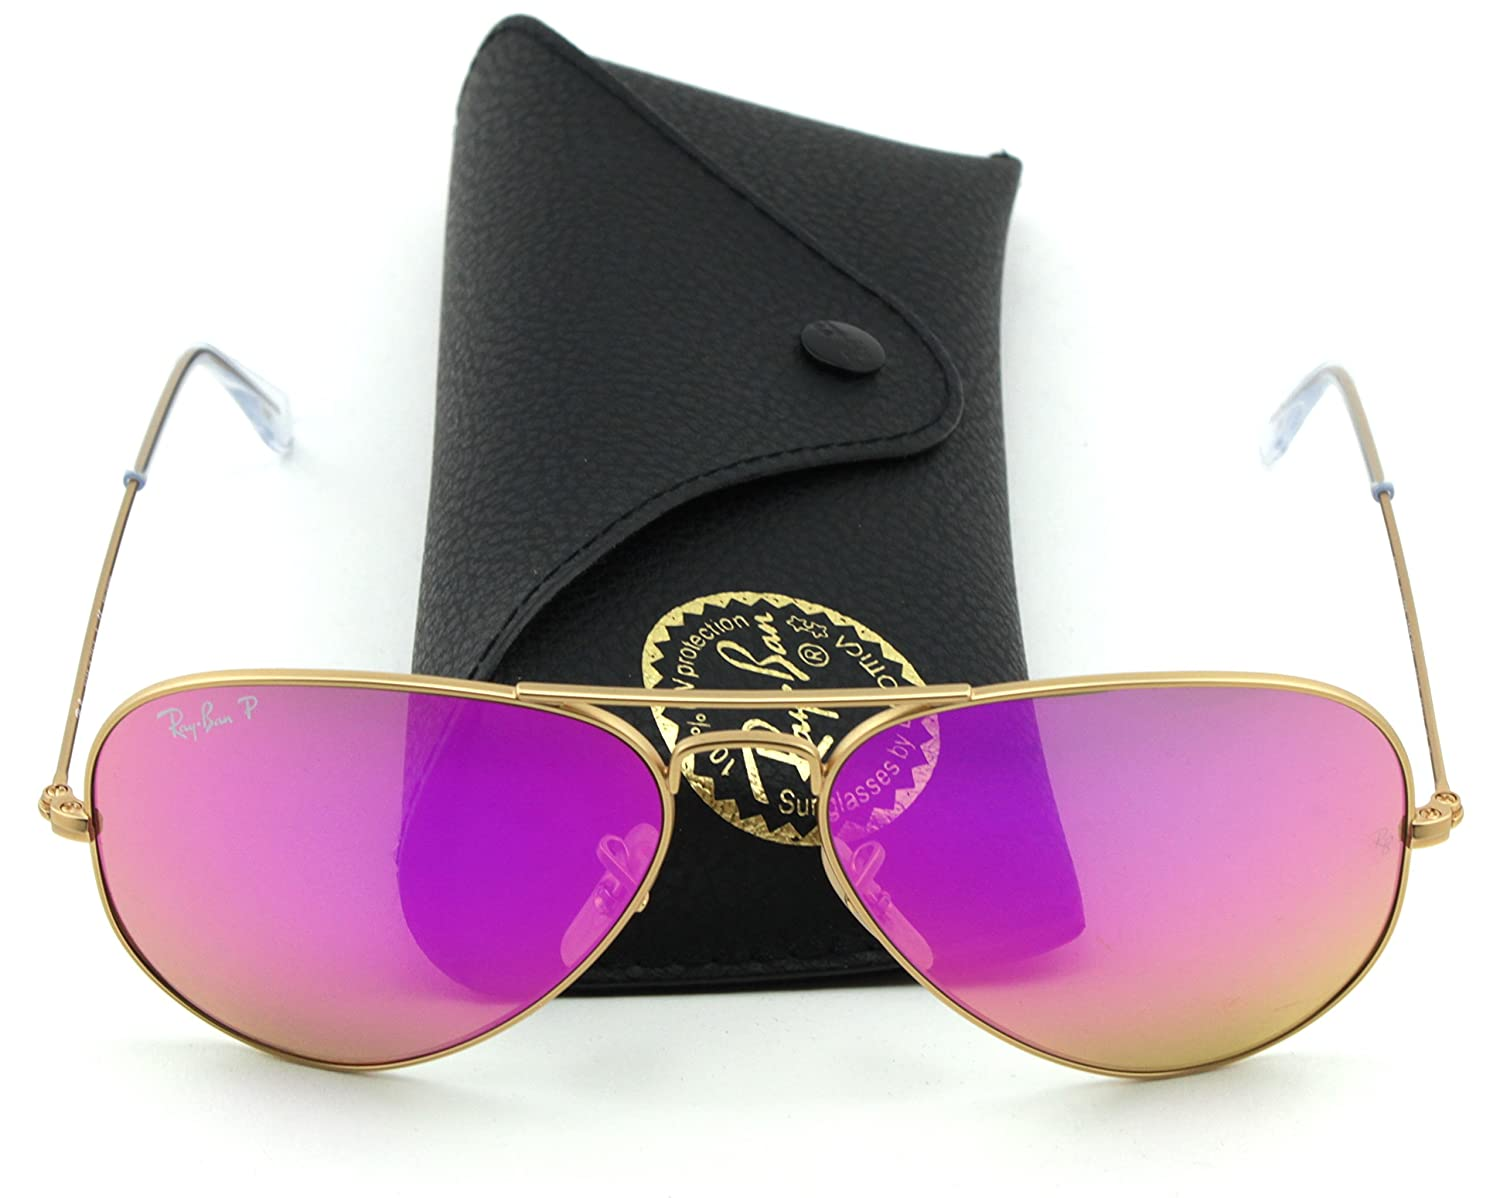 f8c300dab0 Amazon.com  Ray-Ban RB3025 112 1Q Gold Frame   Cyclamen Flash Polarized  Lens Sunglasses  Clothing